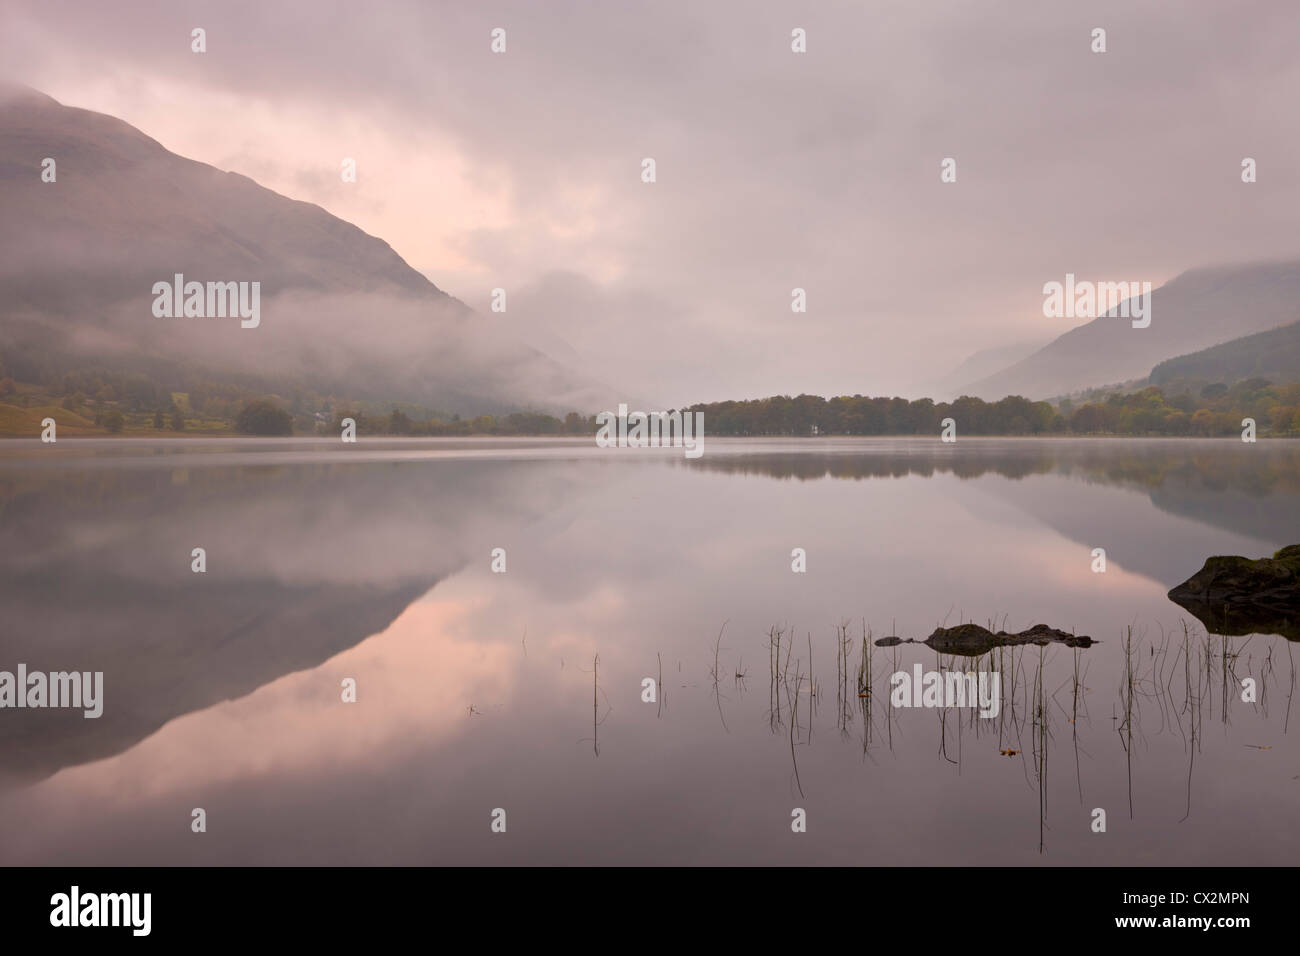 Mist over Loch Voil at dawn, The Trossachs, Scotland. Autumn (October) 2010. - Stock Image